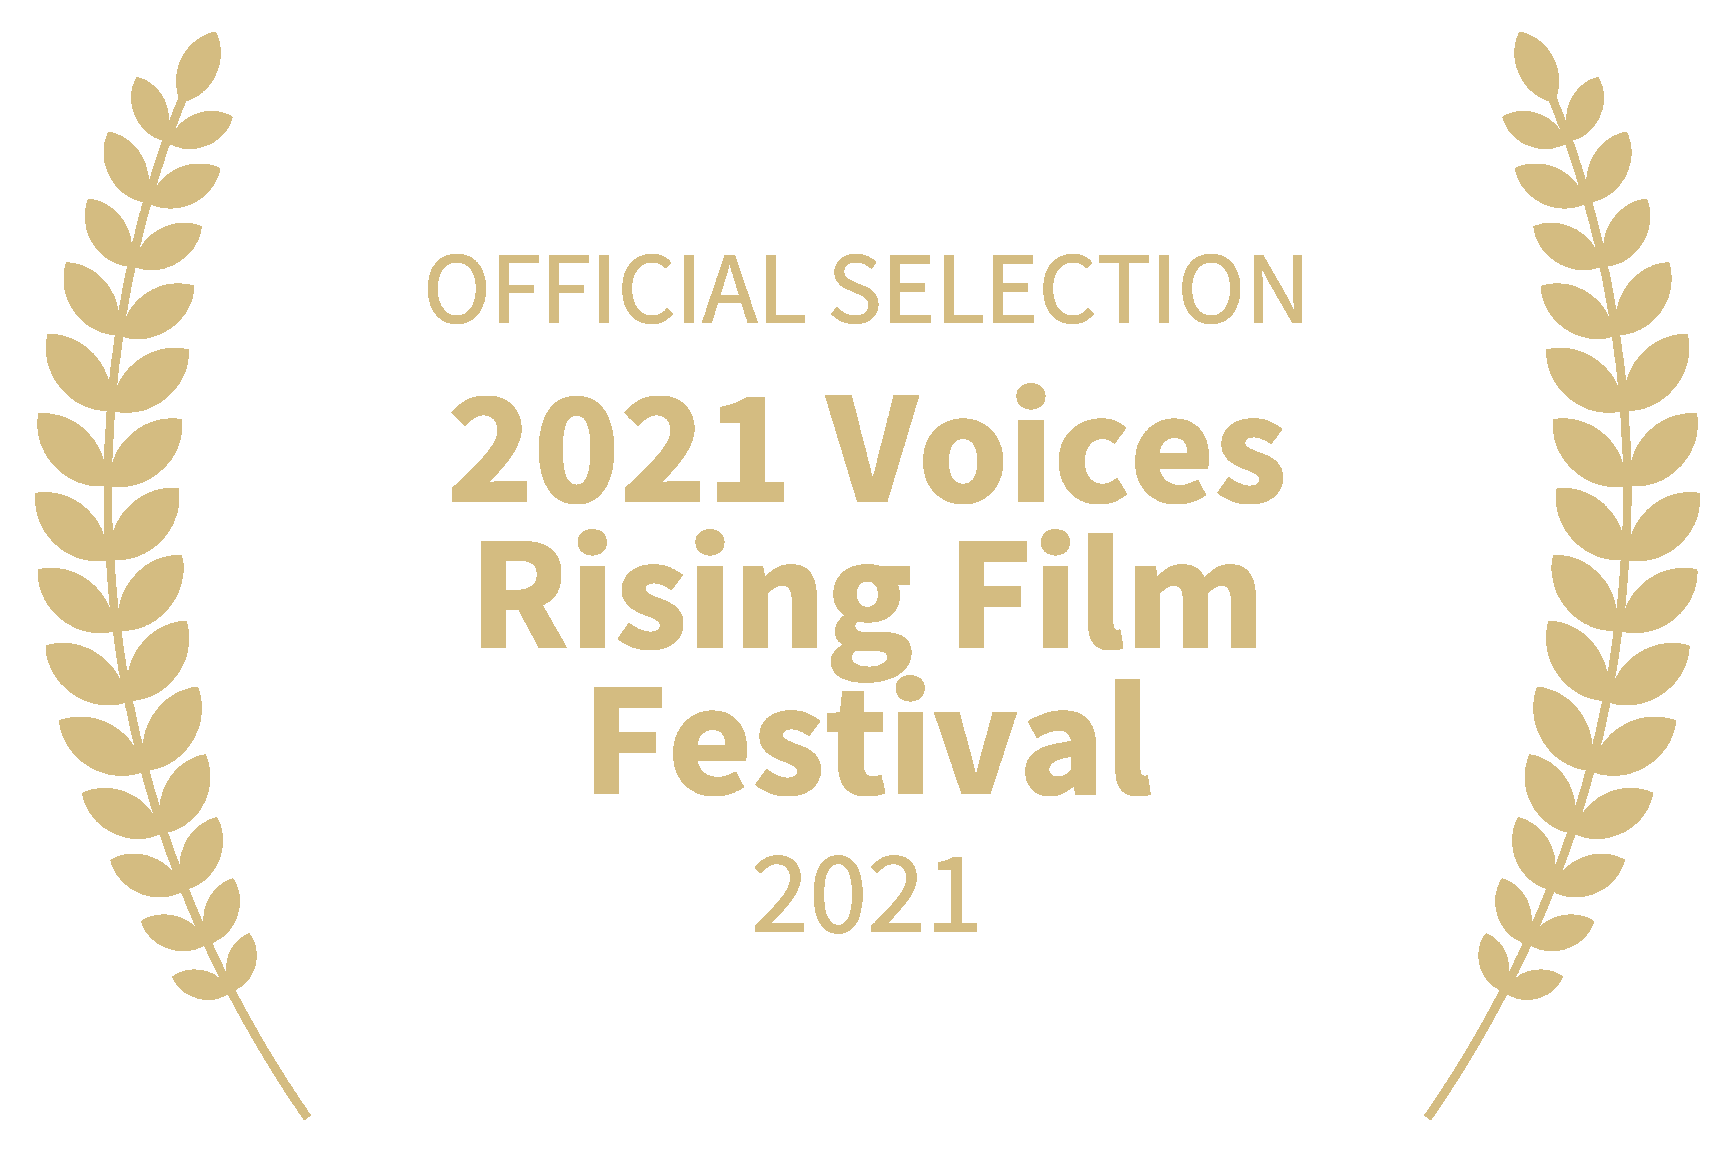 OFFICIAL-SELECTION-2021-Voices-Rising-Film-Festival-2021